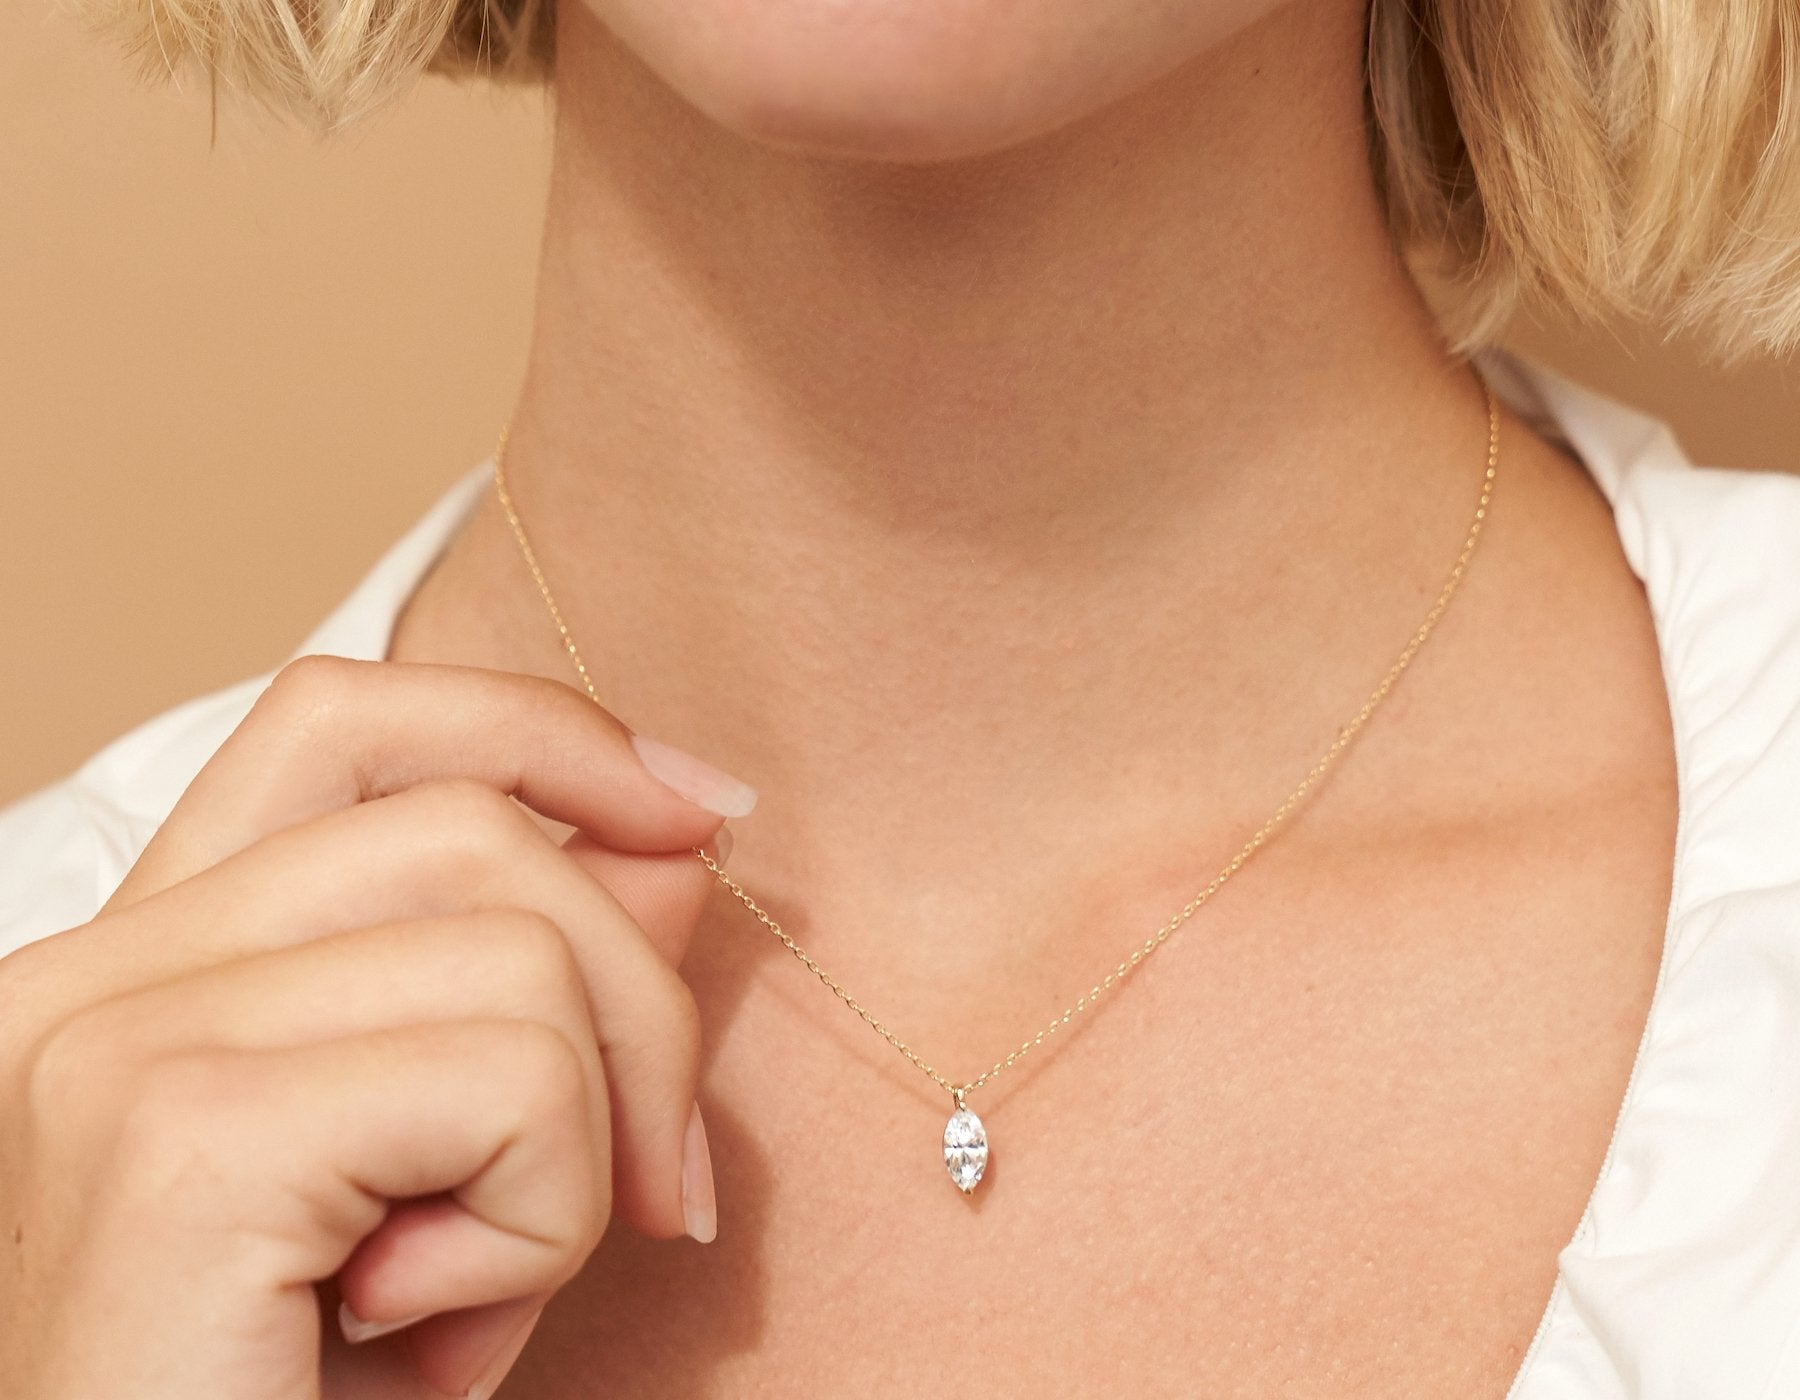 Model wearing Vrai 14K solid gold solitaire marquise diamond pendant necklace 1ct minimalist delicate, 14K White Gold